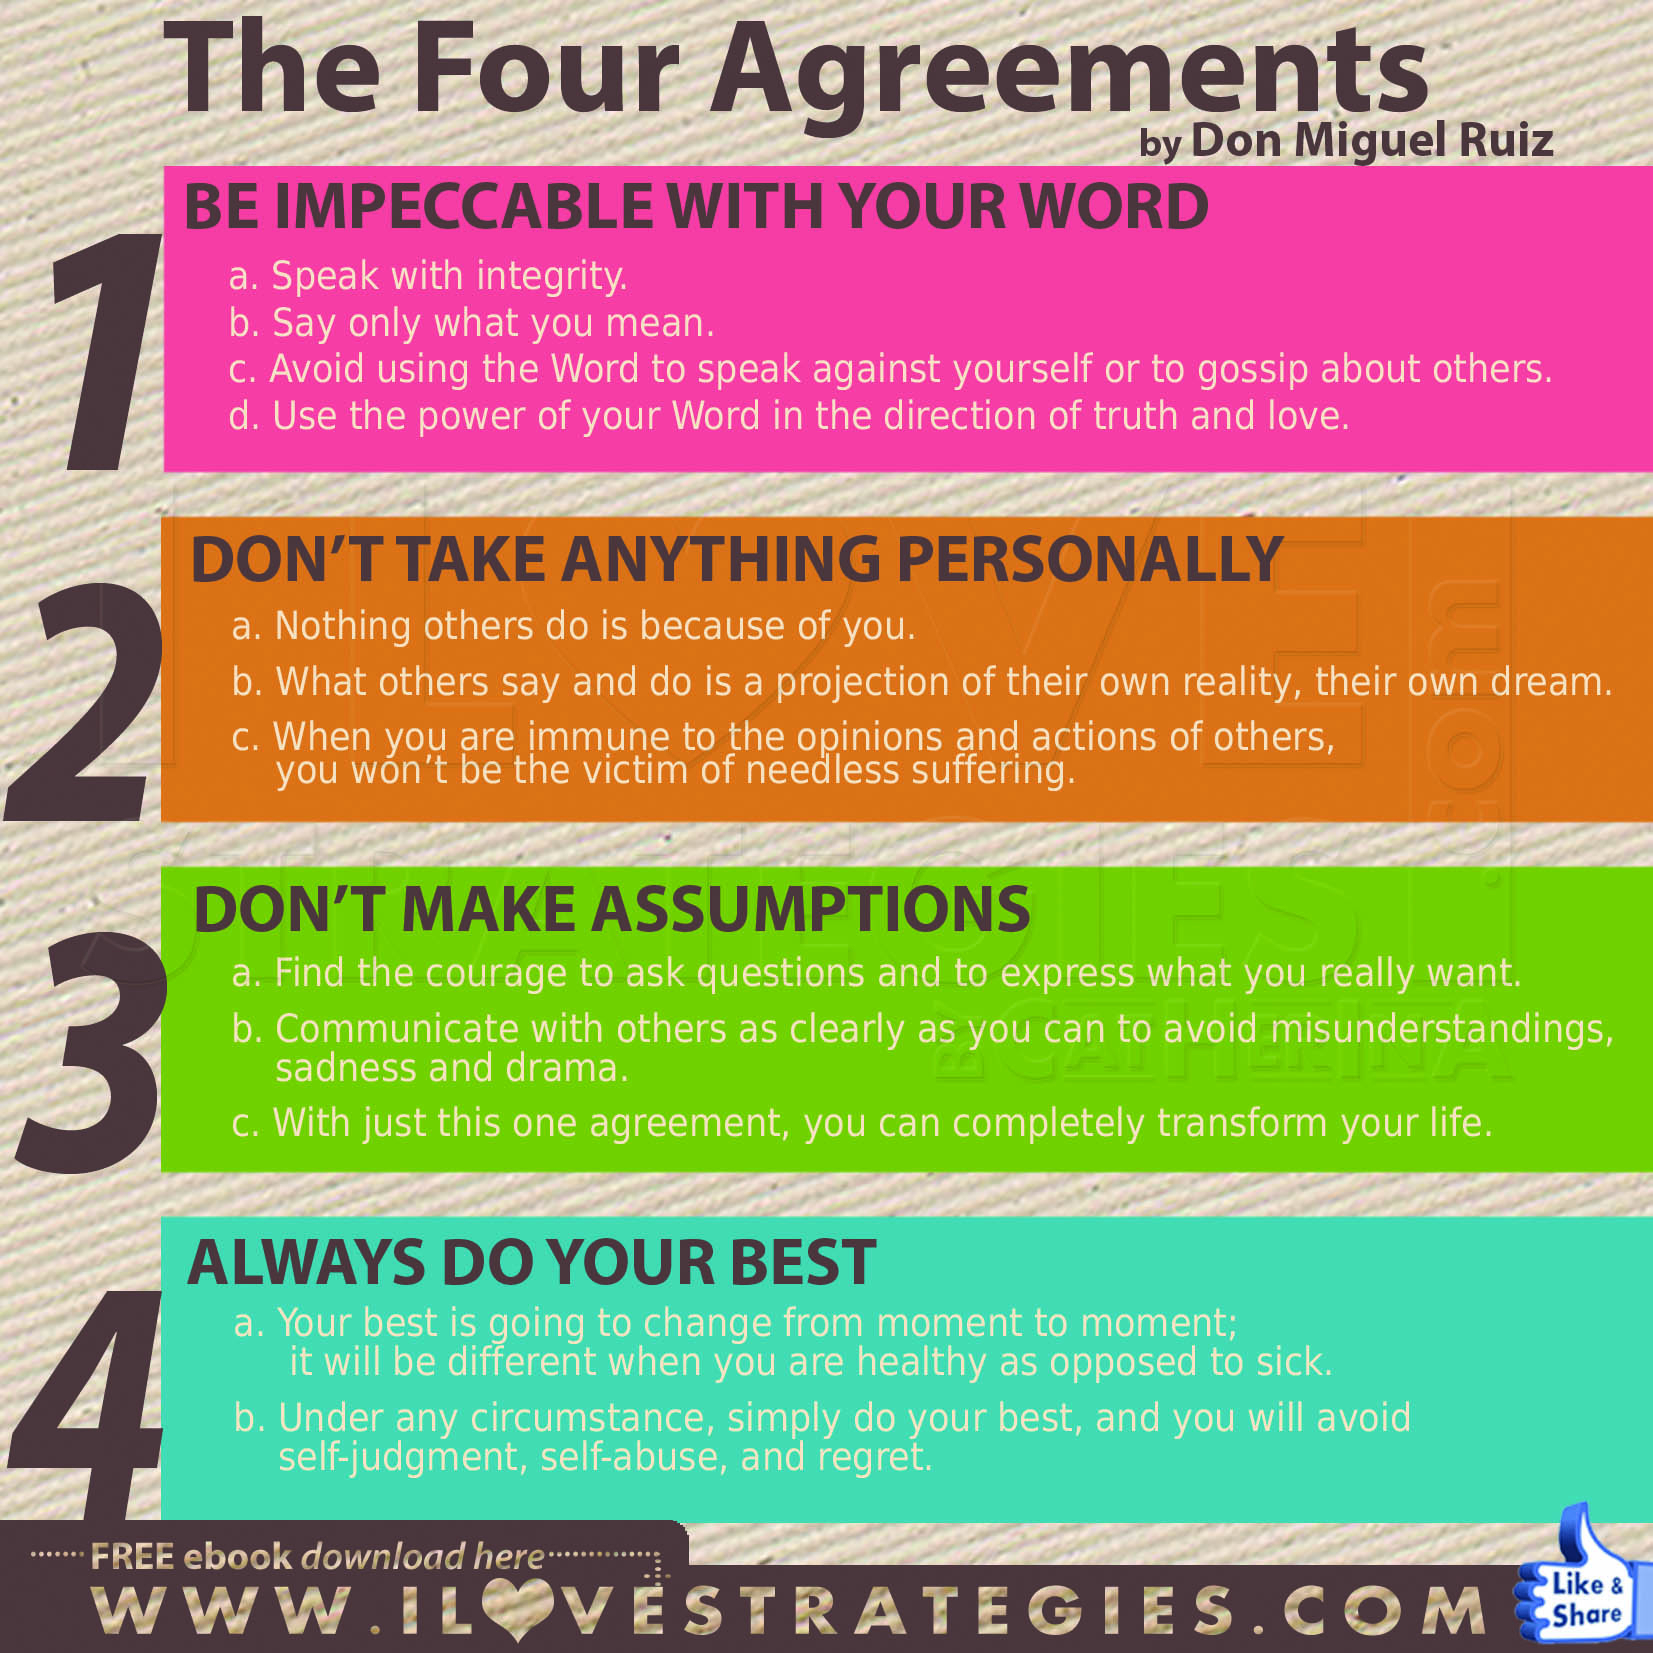 Four Agreements Book Free Download The Four Agreements Book Recommendation Phoebe Jenkins